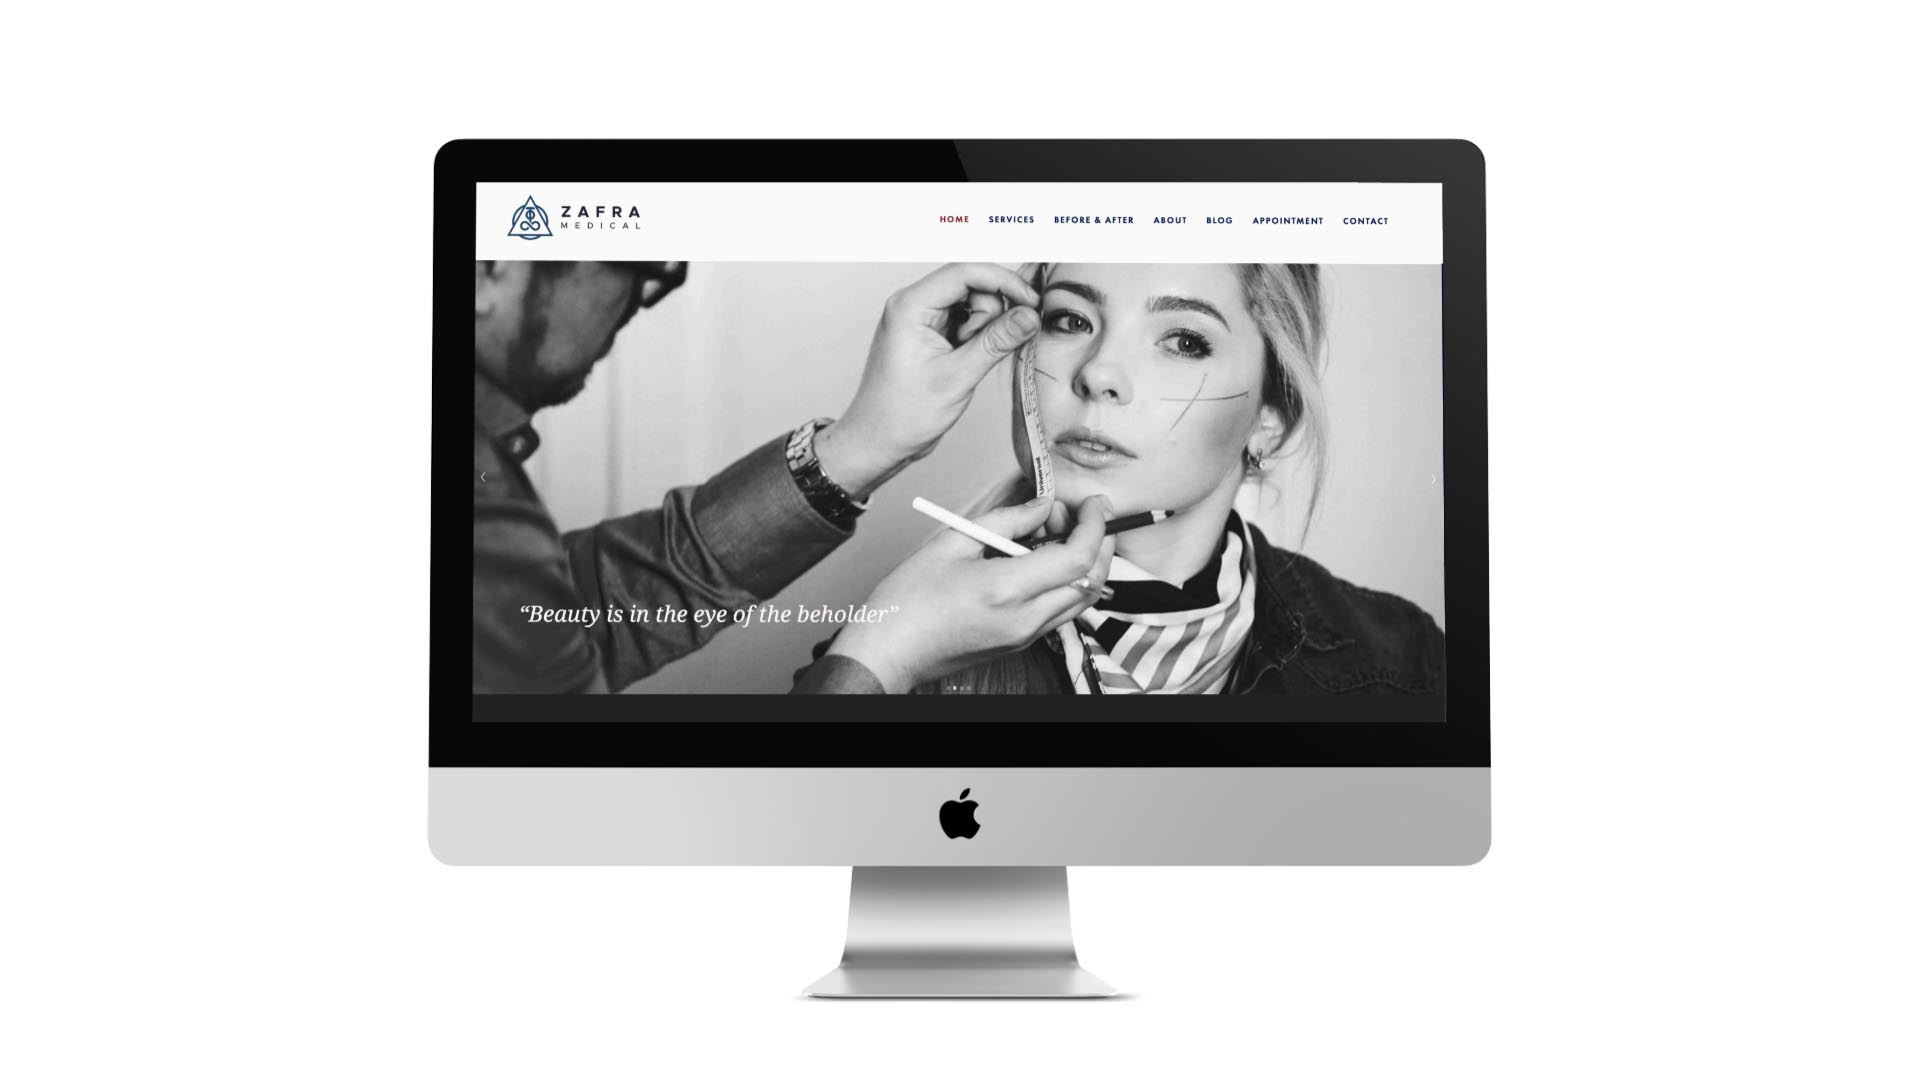 squarespace-website-zafra-visuable